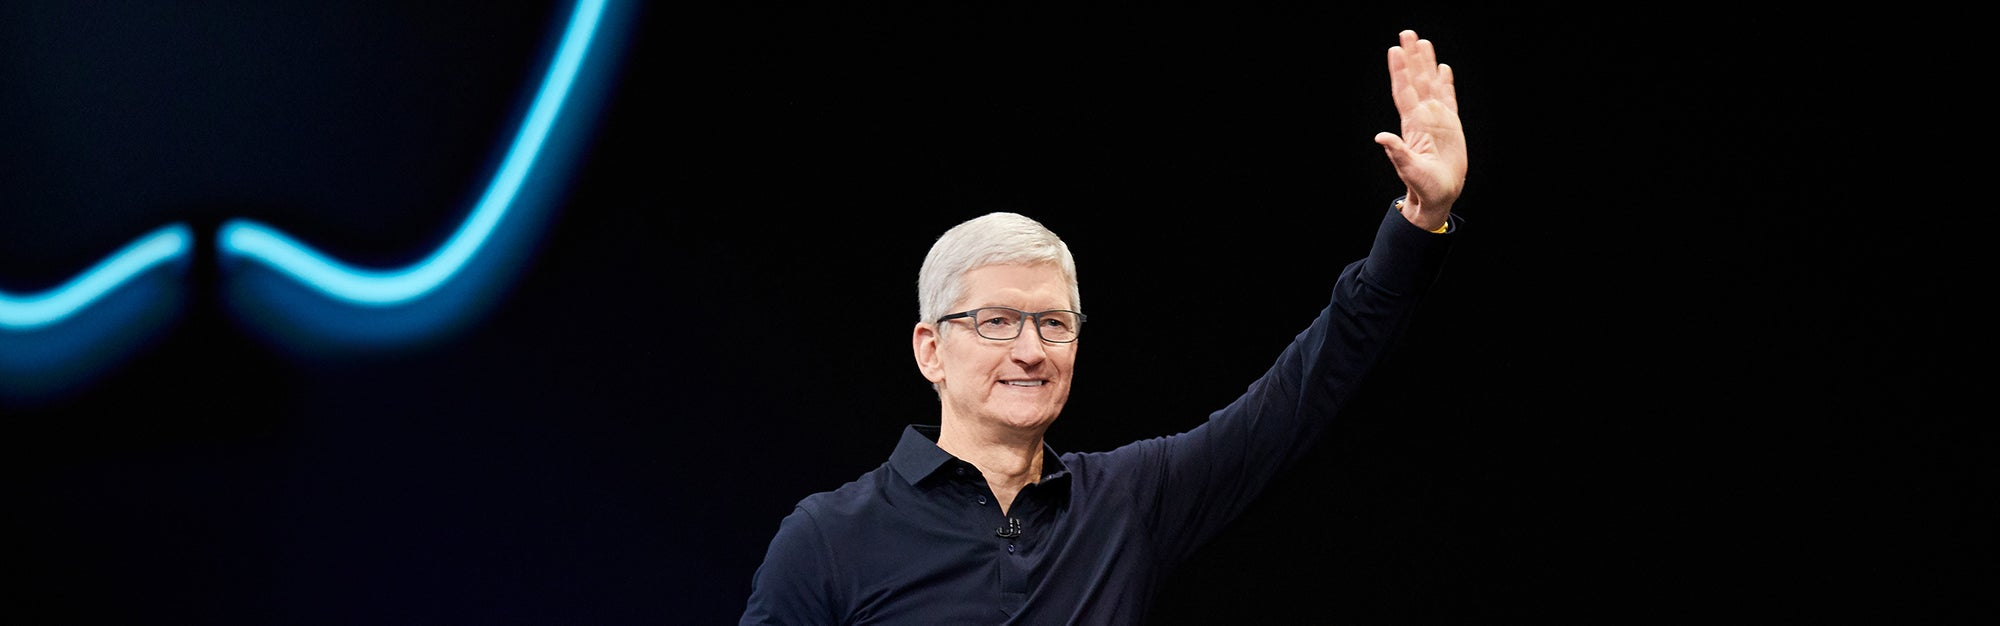 Is Apple tackling home security? Recent acquisitions point to yes